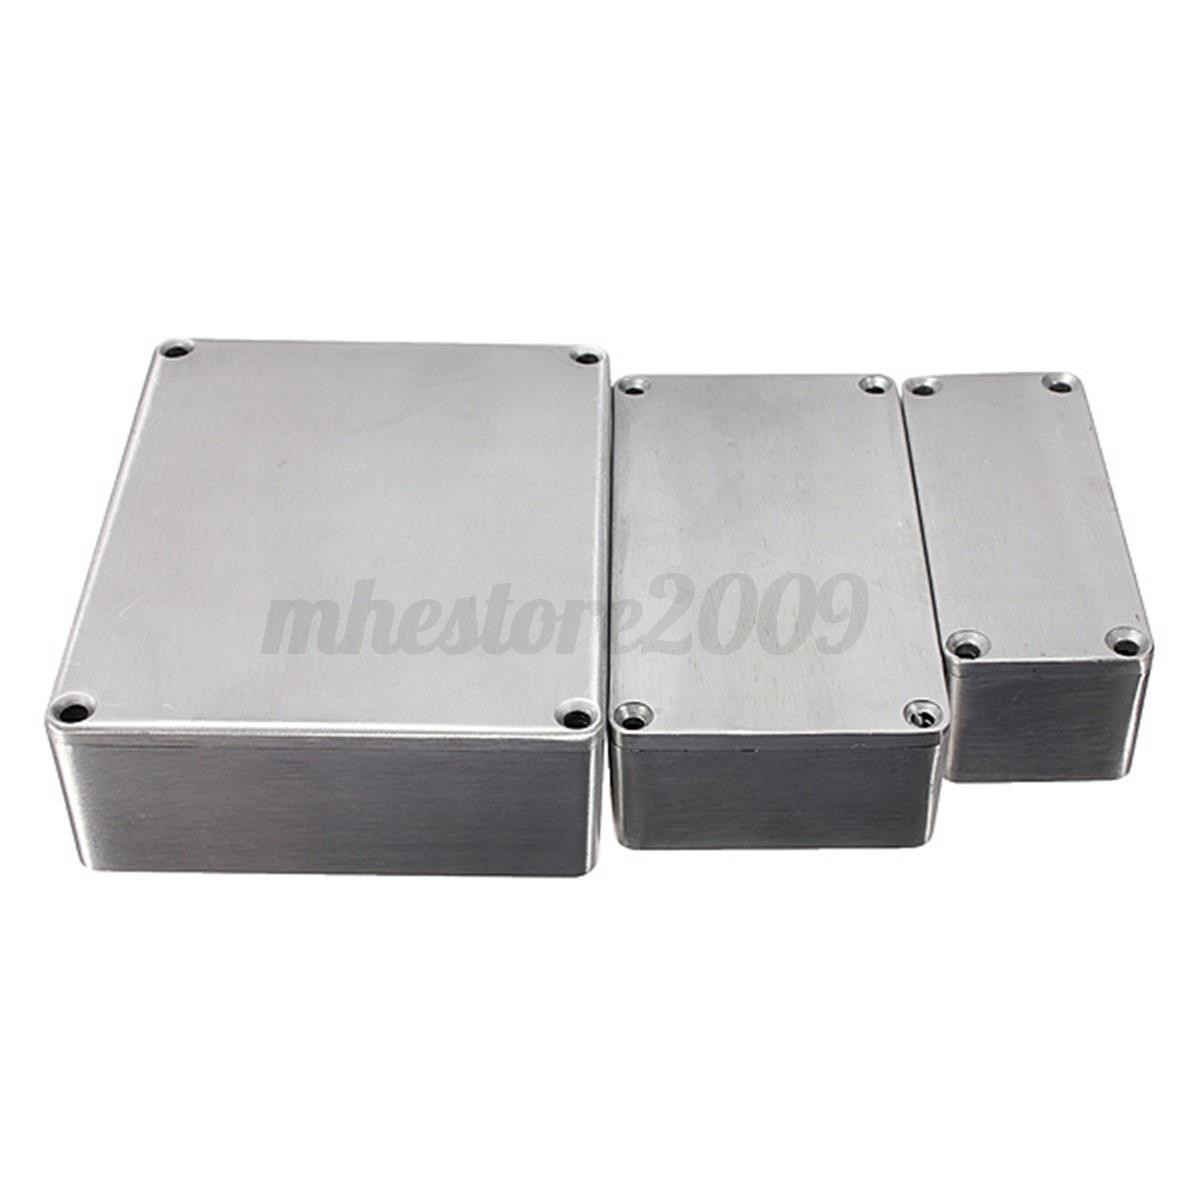 1590a 1590b 159bb style aluminum stomp project box effect pedal enclosure guitar ebay. Black Bedroom Furniture Sets. Home Design Ideas